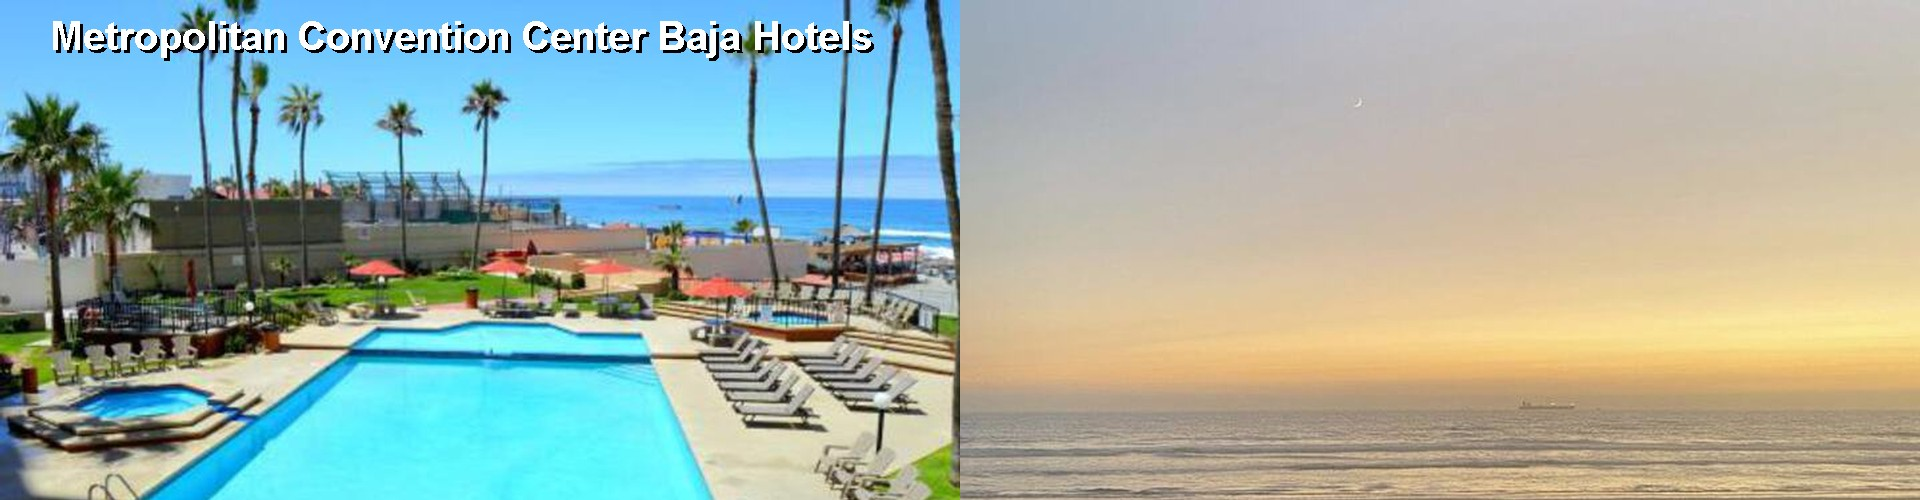 5 Best Hotels near Metropolitan Convention Center Baja